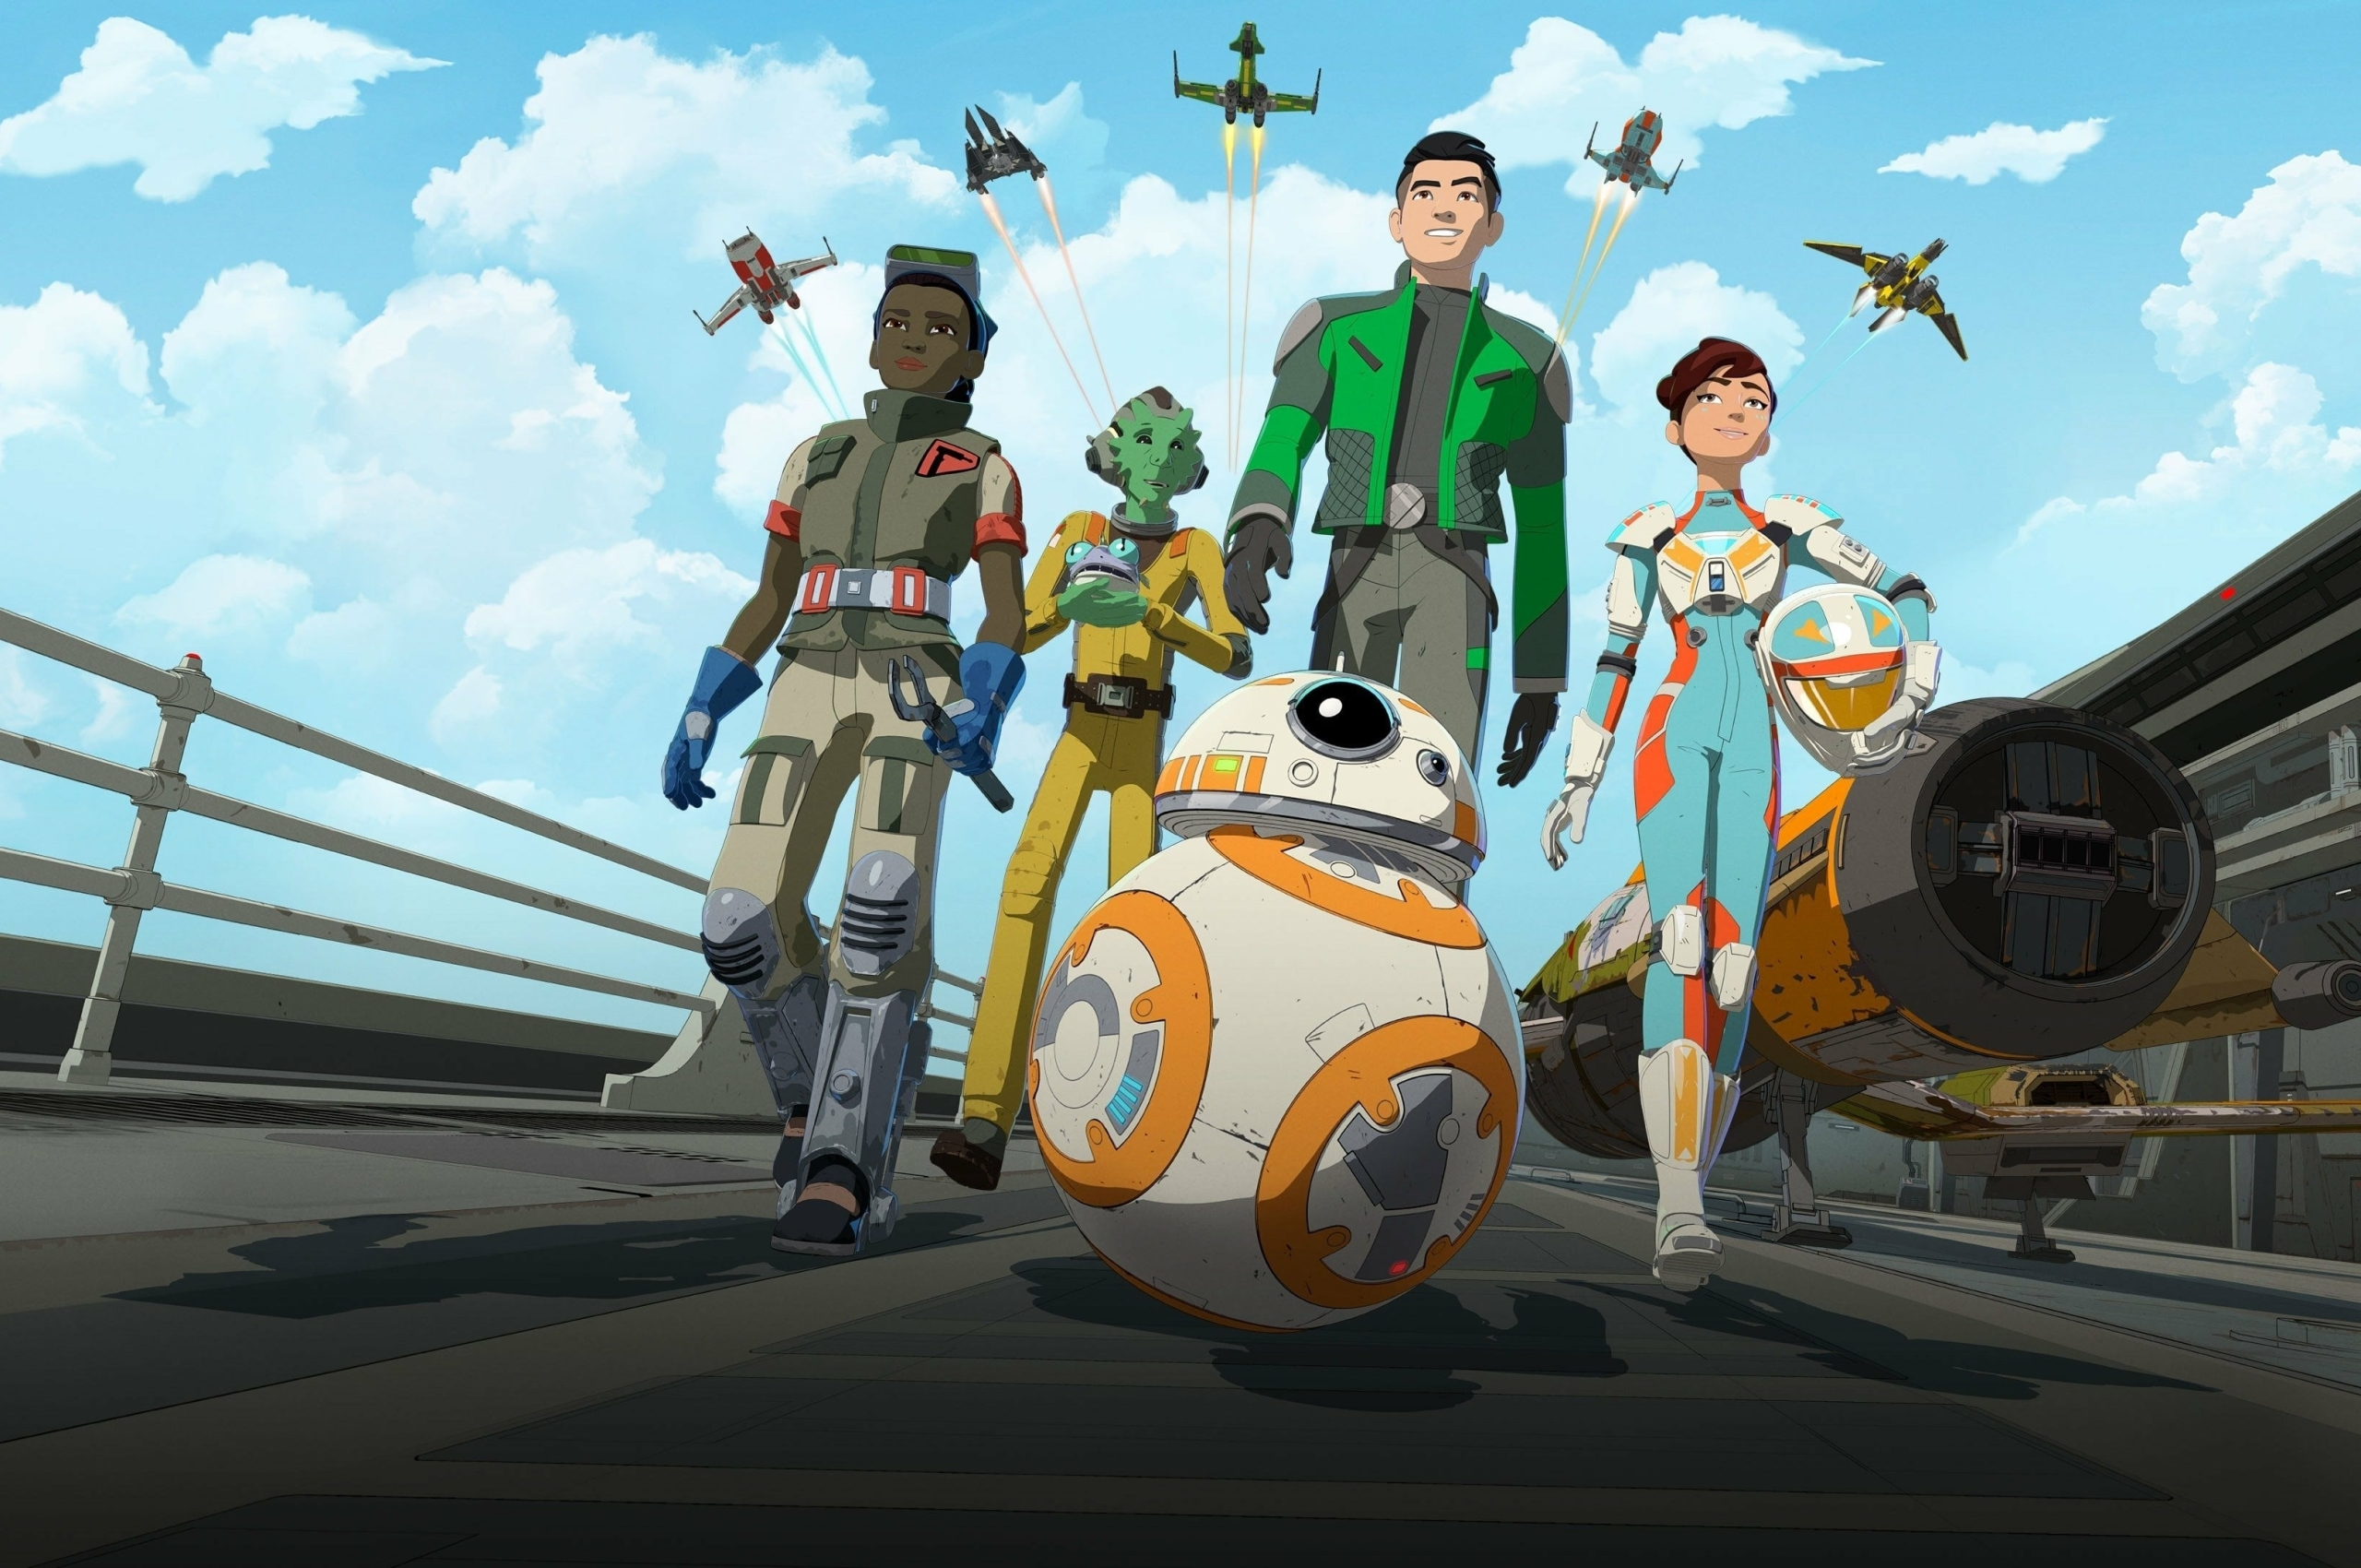 Star Wars Resistance Wallpapers